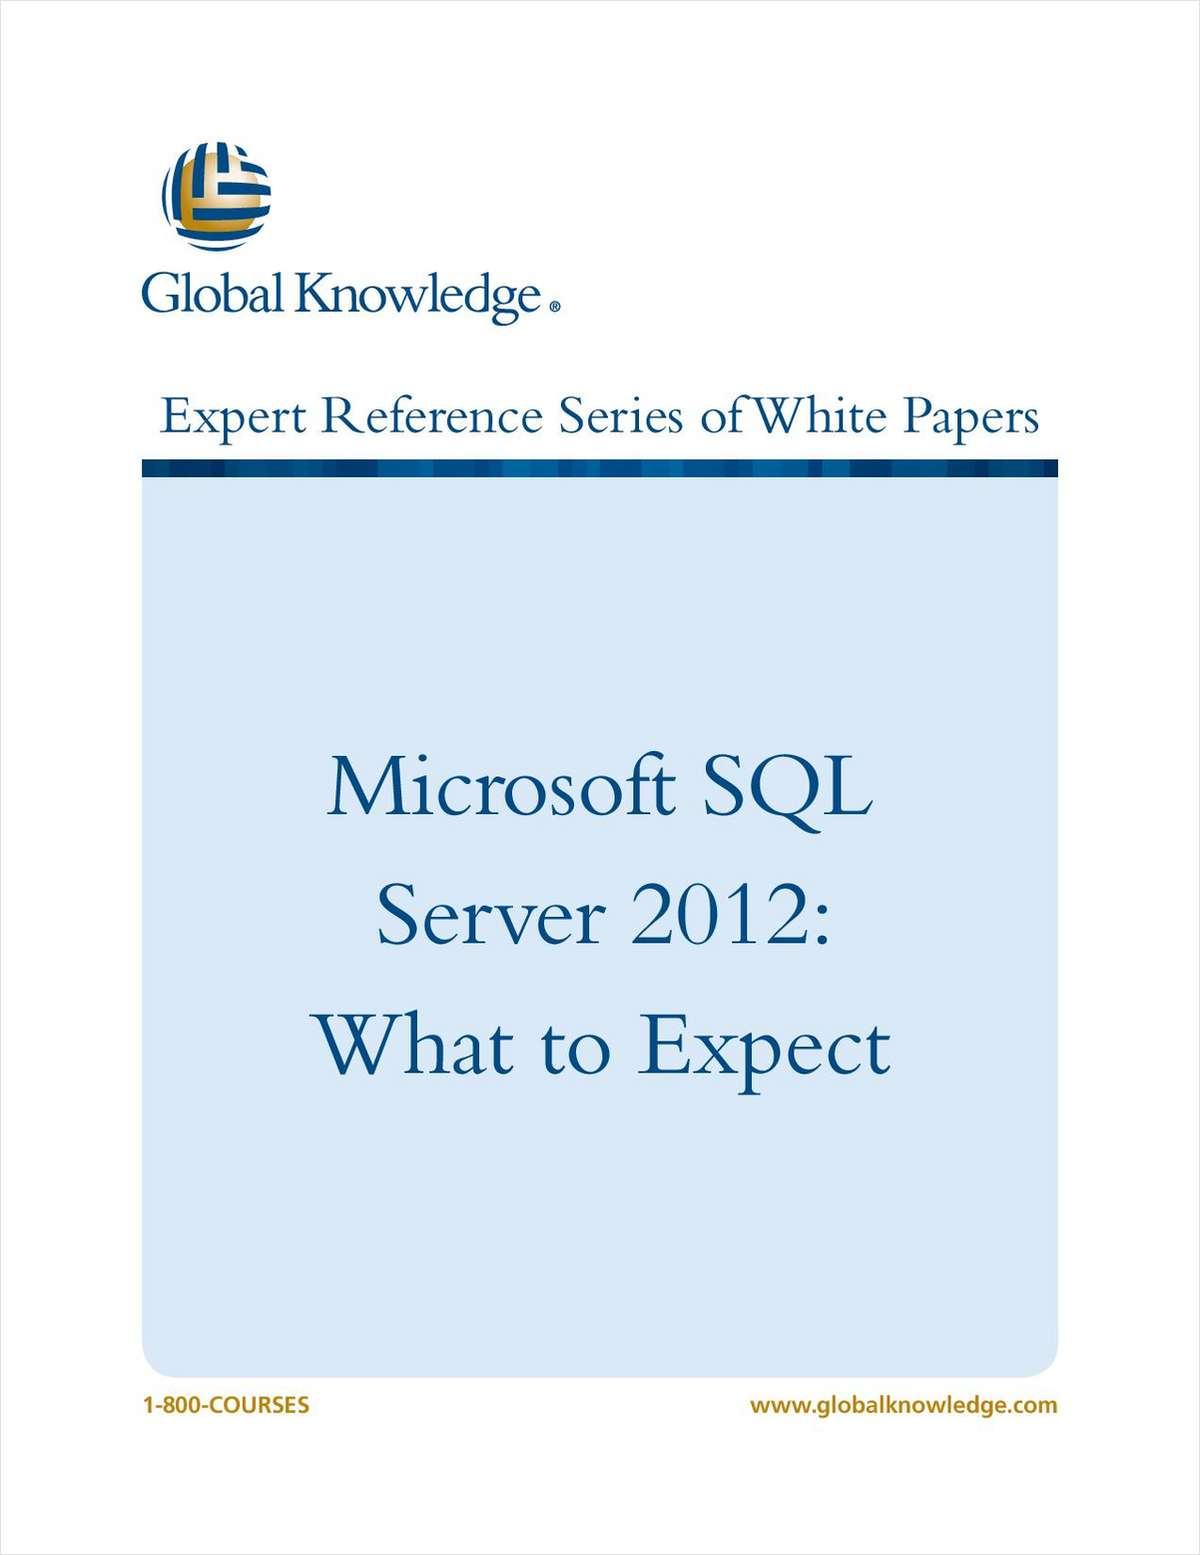 Microsoft SQL Server 2012: What to Expect